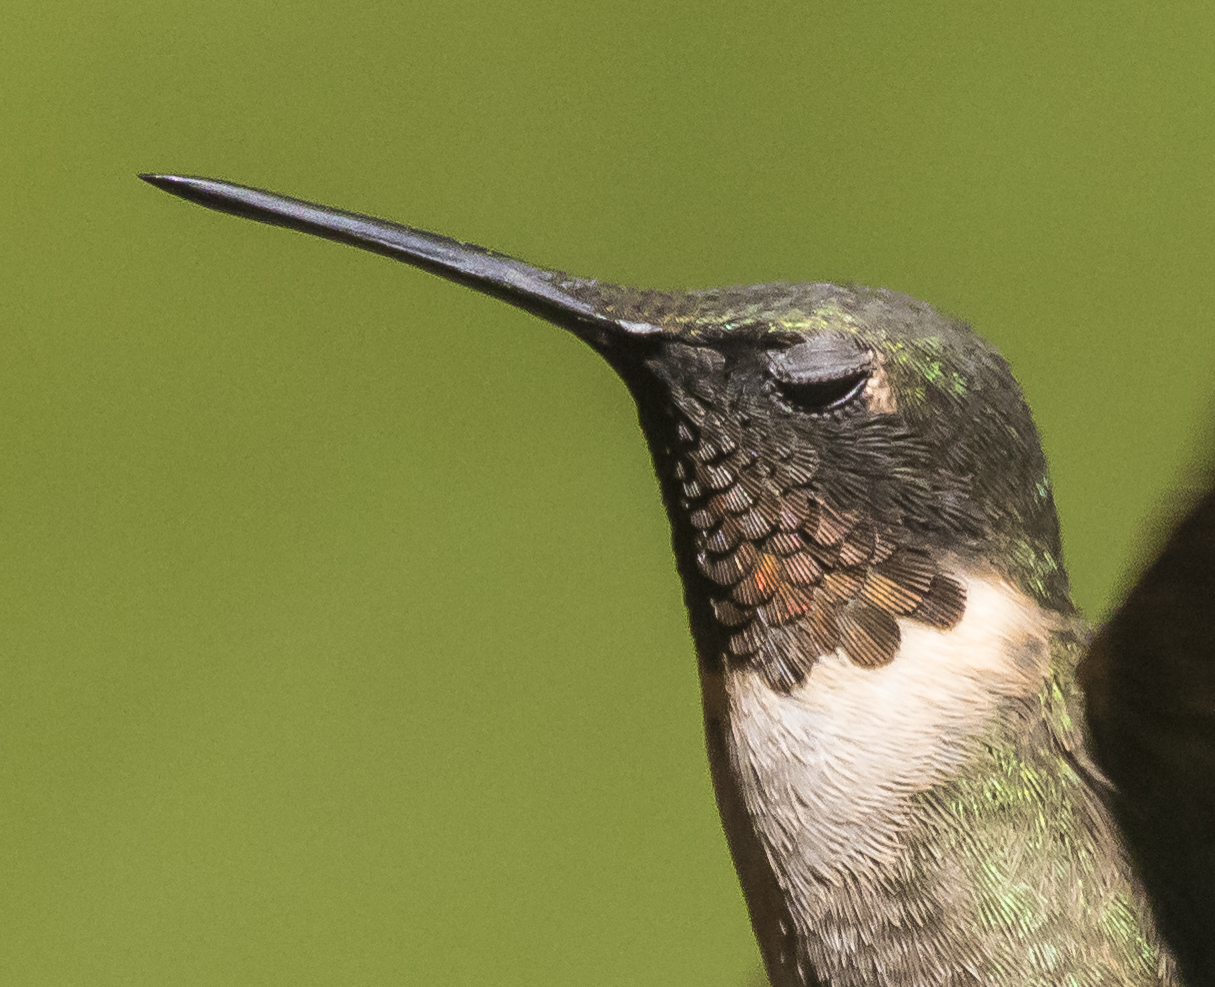 Hummingbird blinking close up